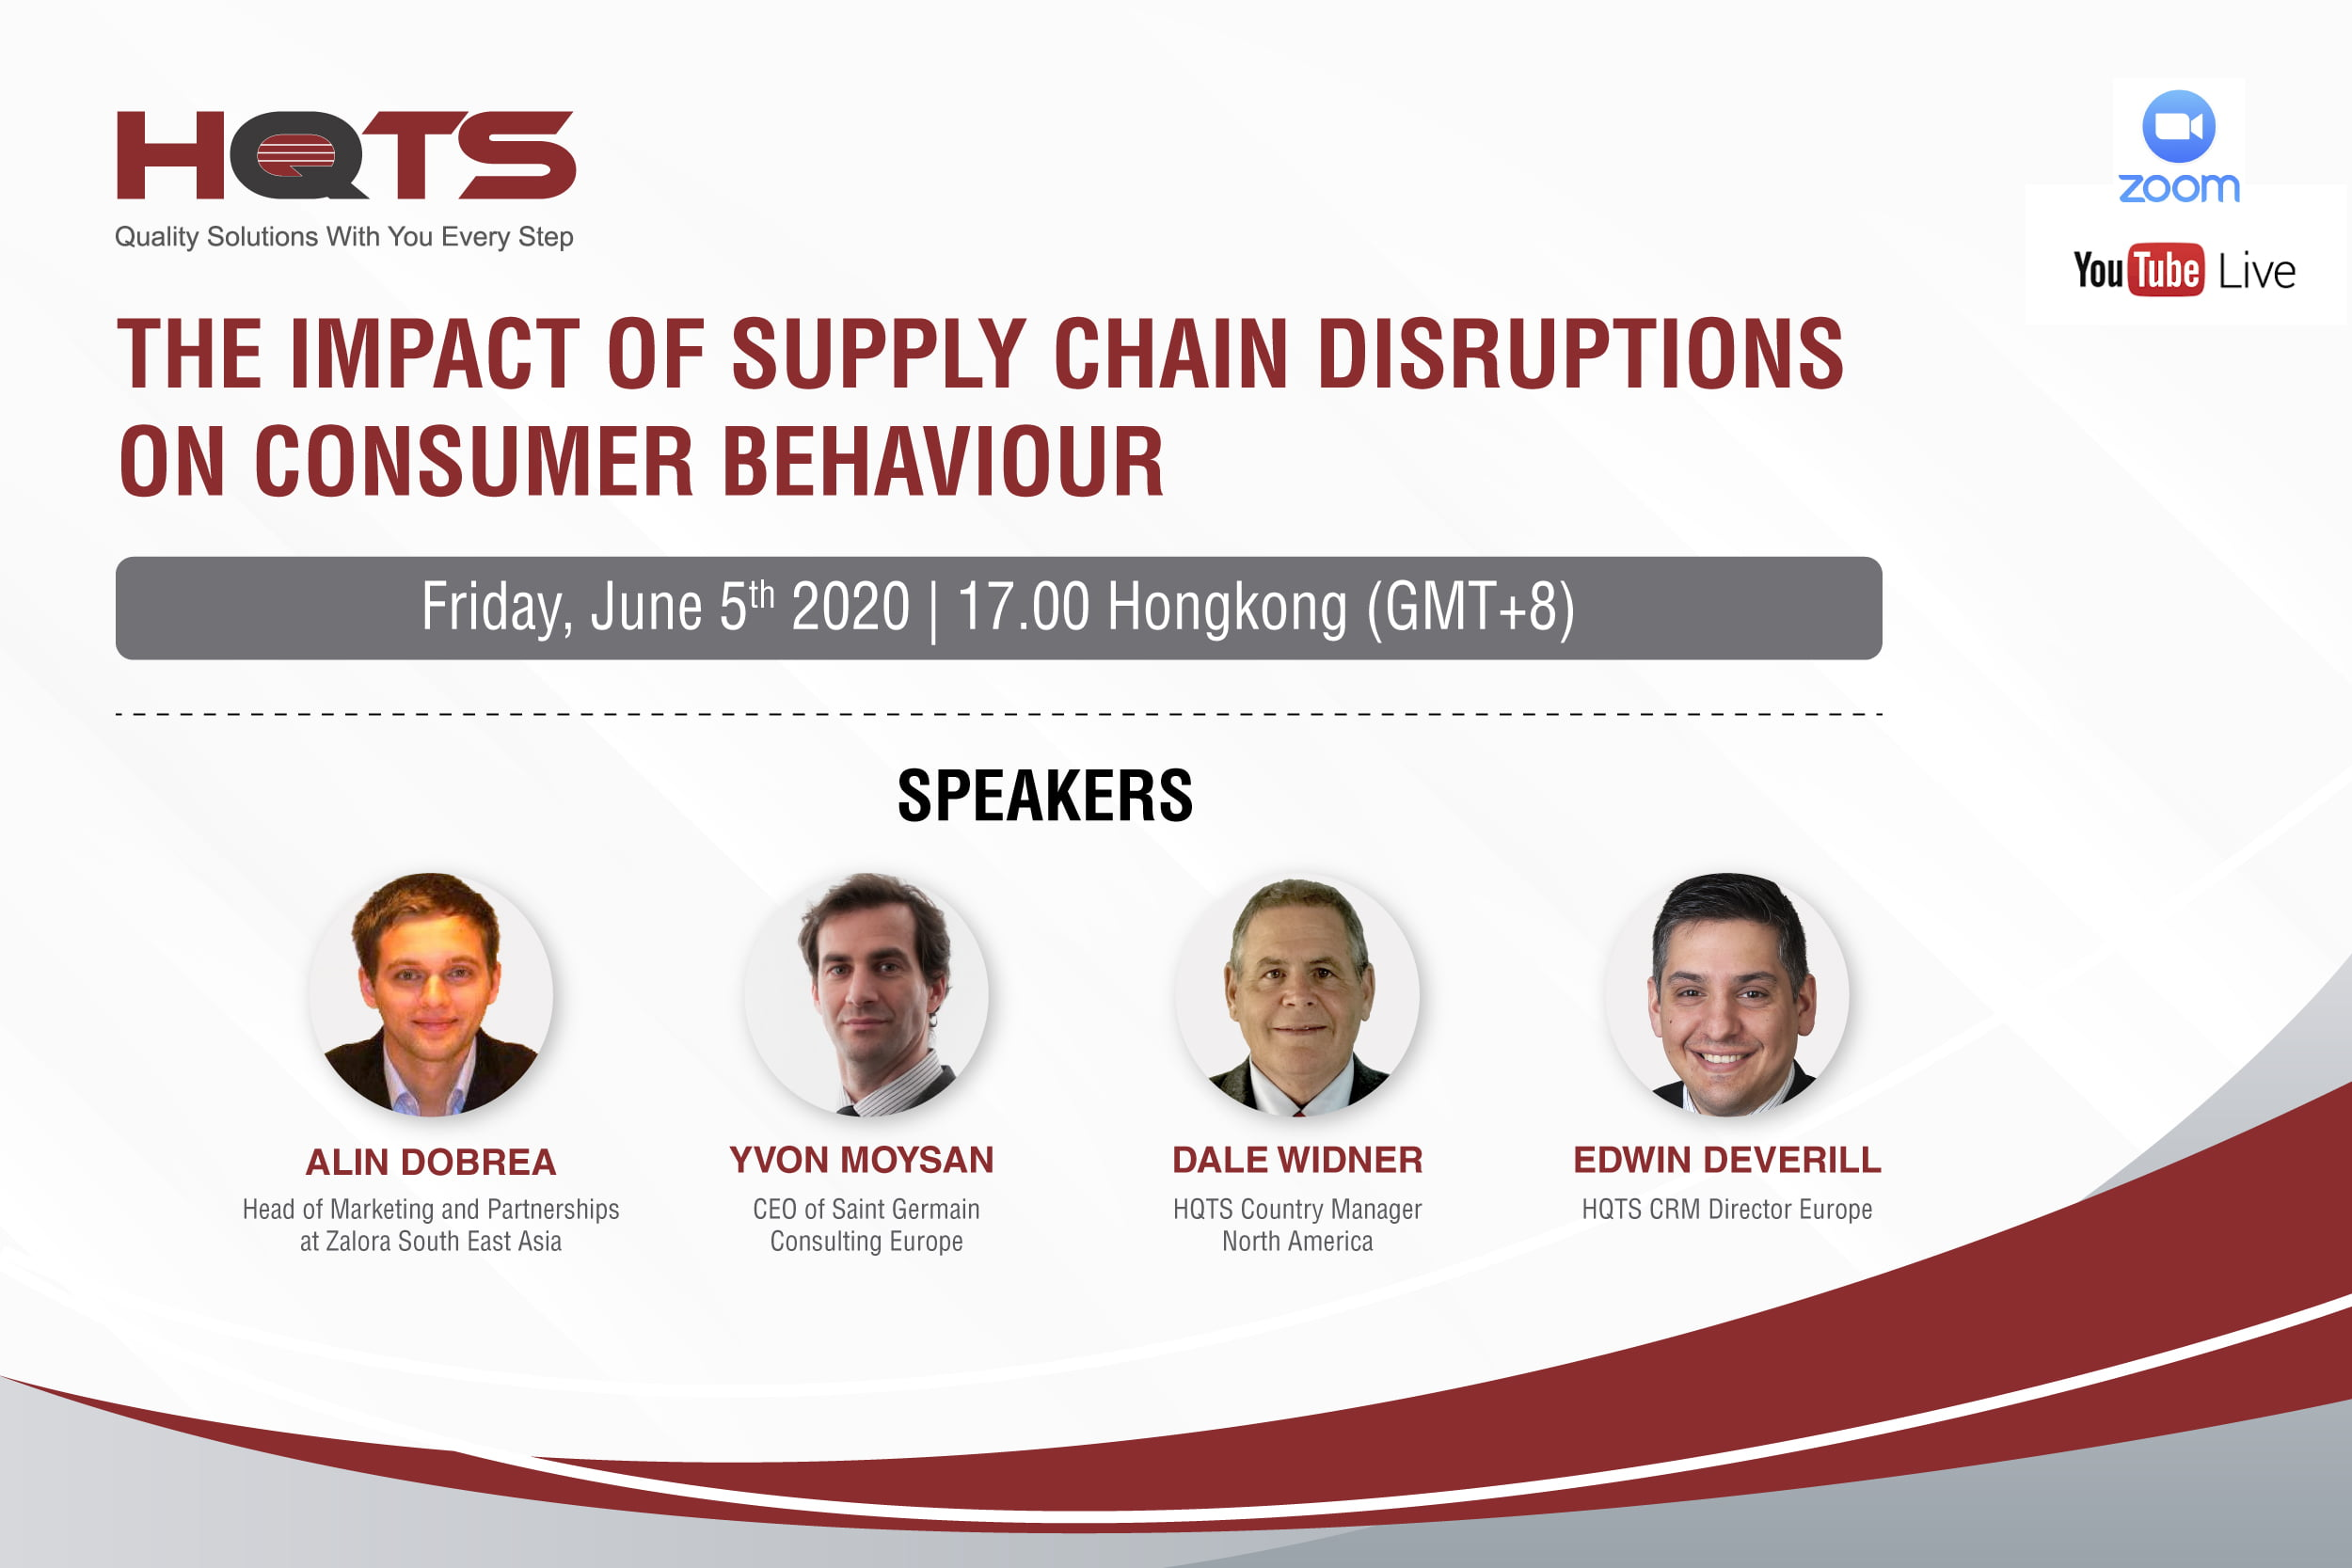 HQTS Online Conference Was a Success: The Impact of Supply Chain Disruptions on Consumer Behaviour